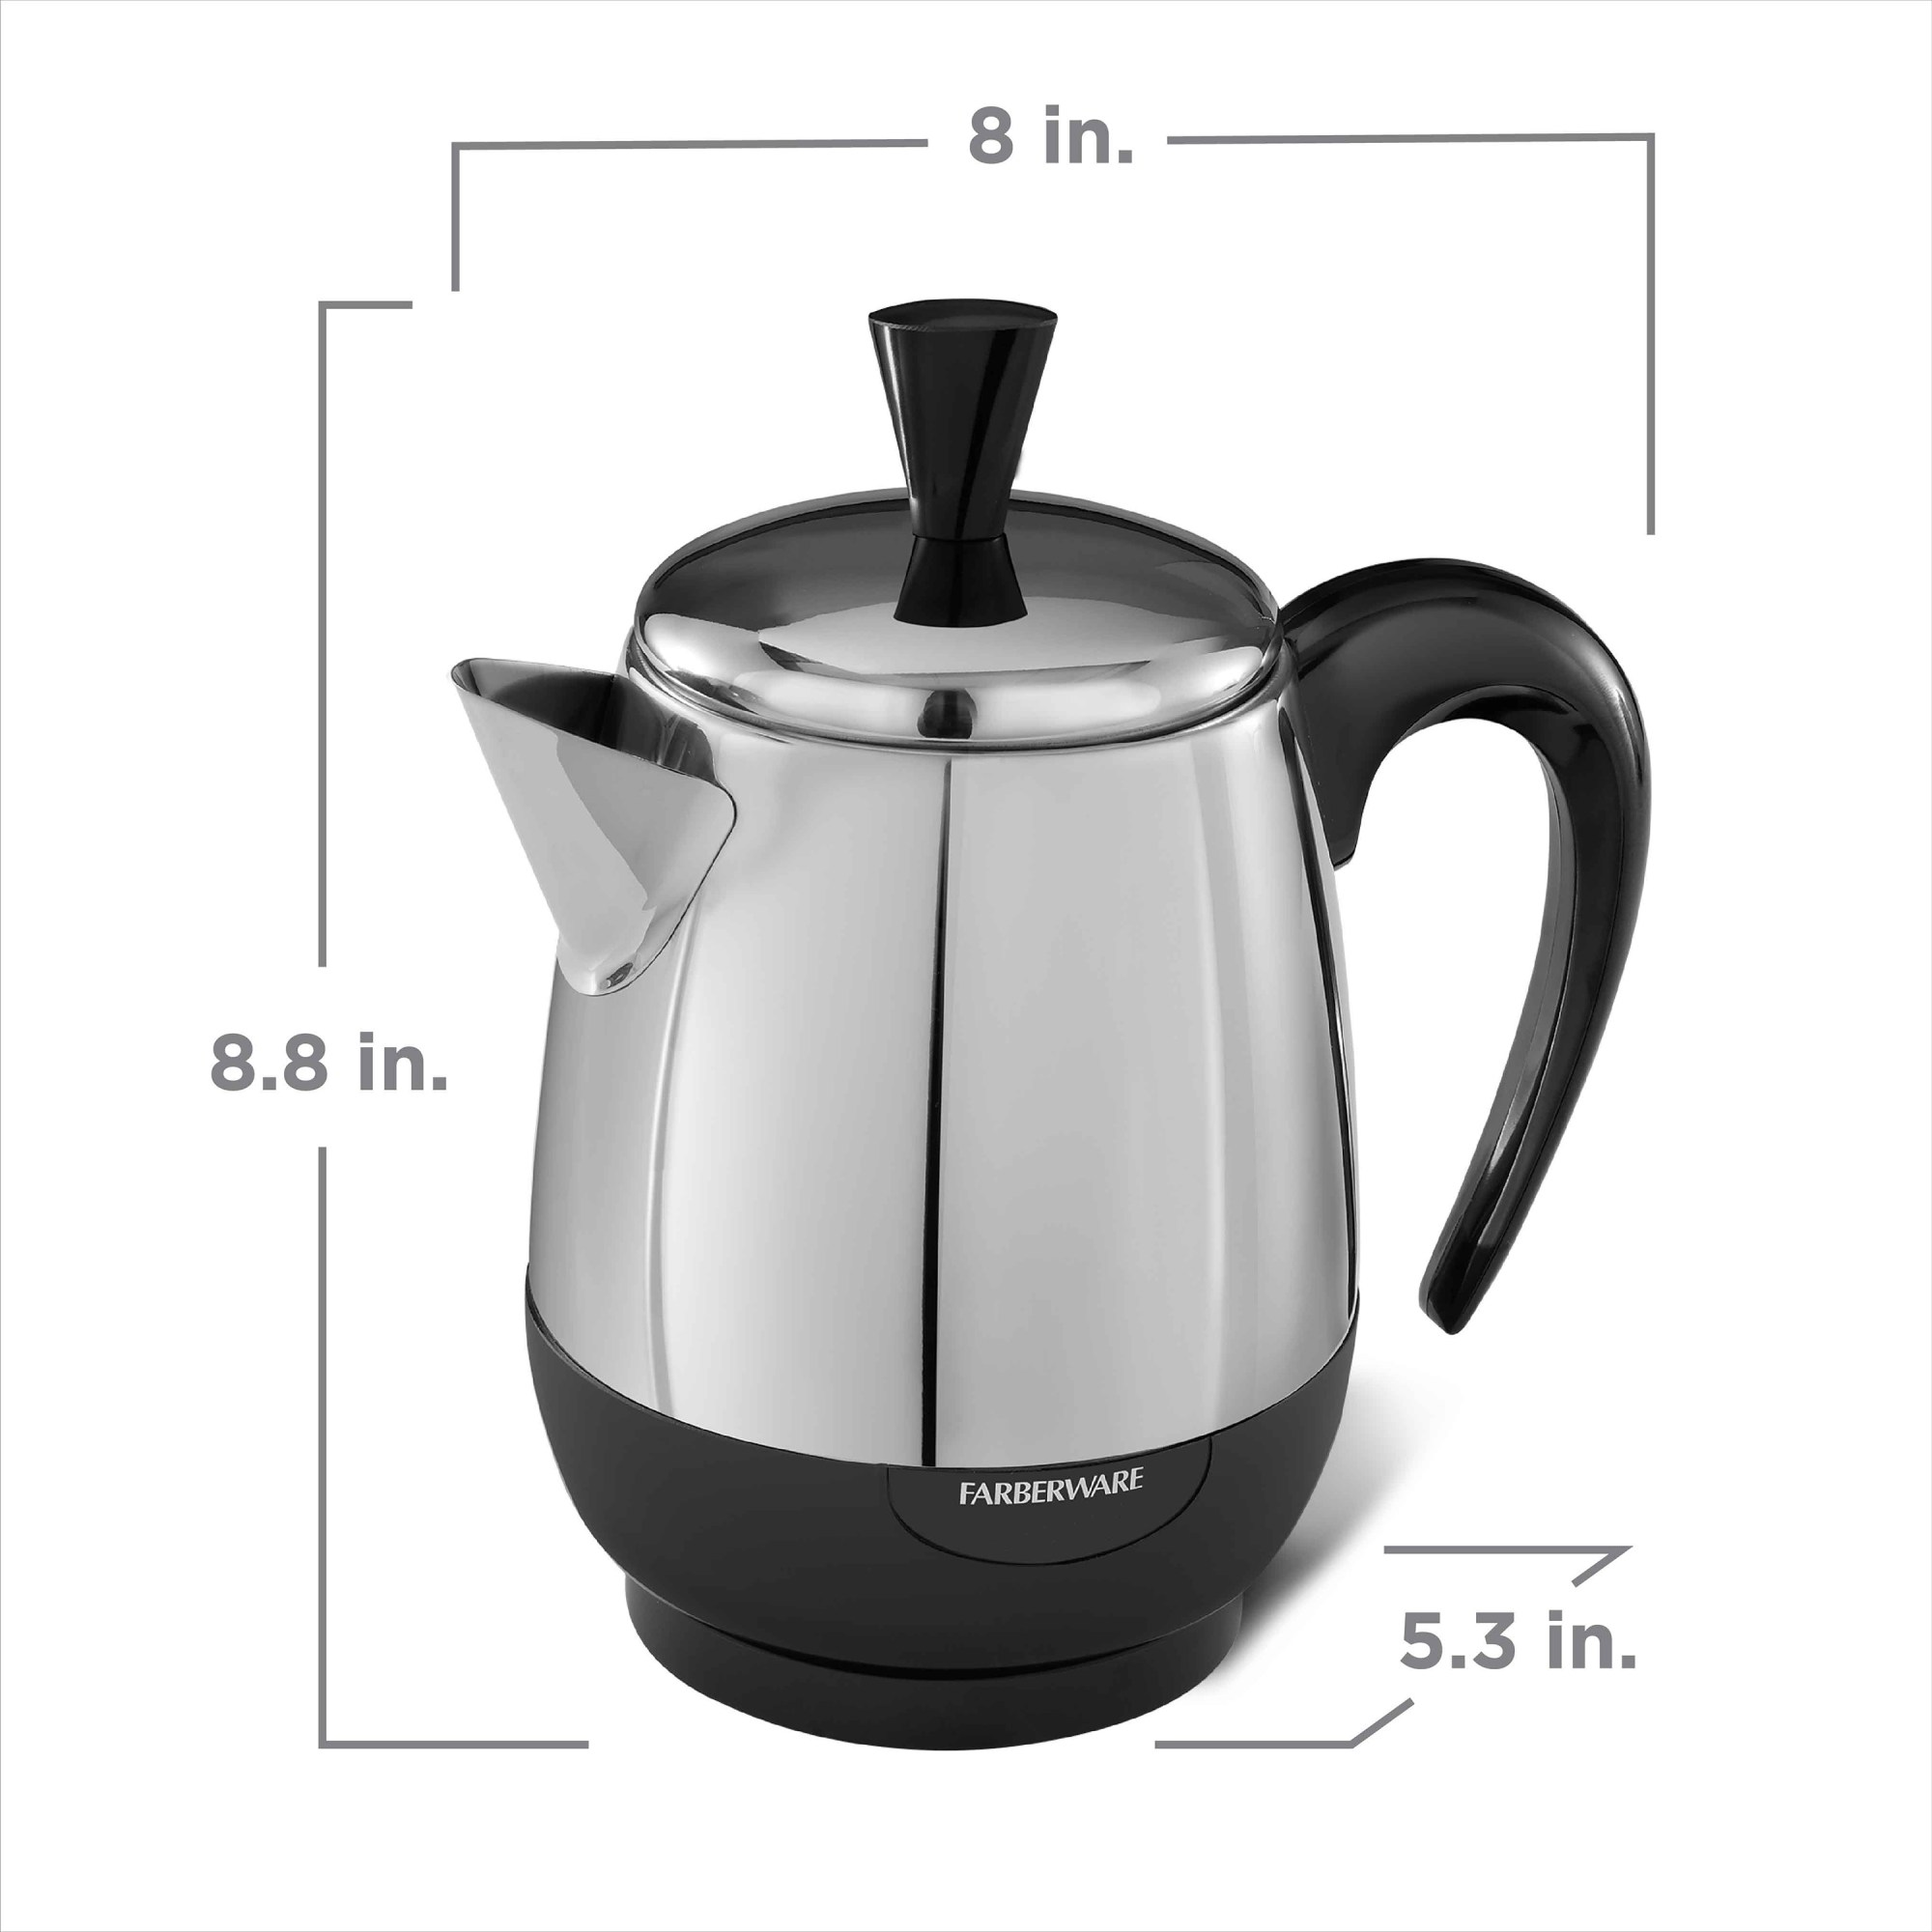 hight resolution of farberware 2 4 cup electric percolator stainless steel fcp240 walmart com